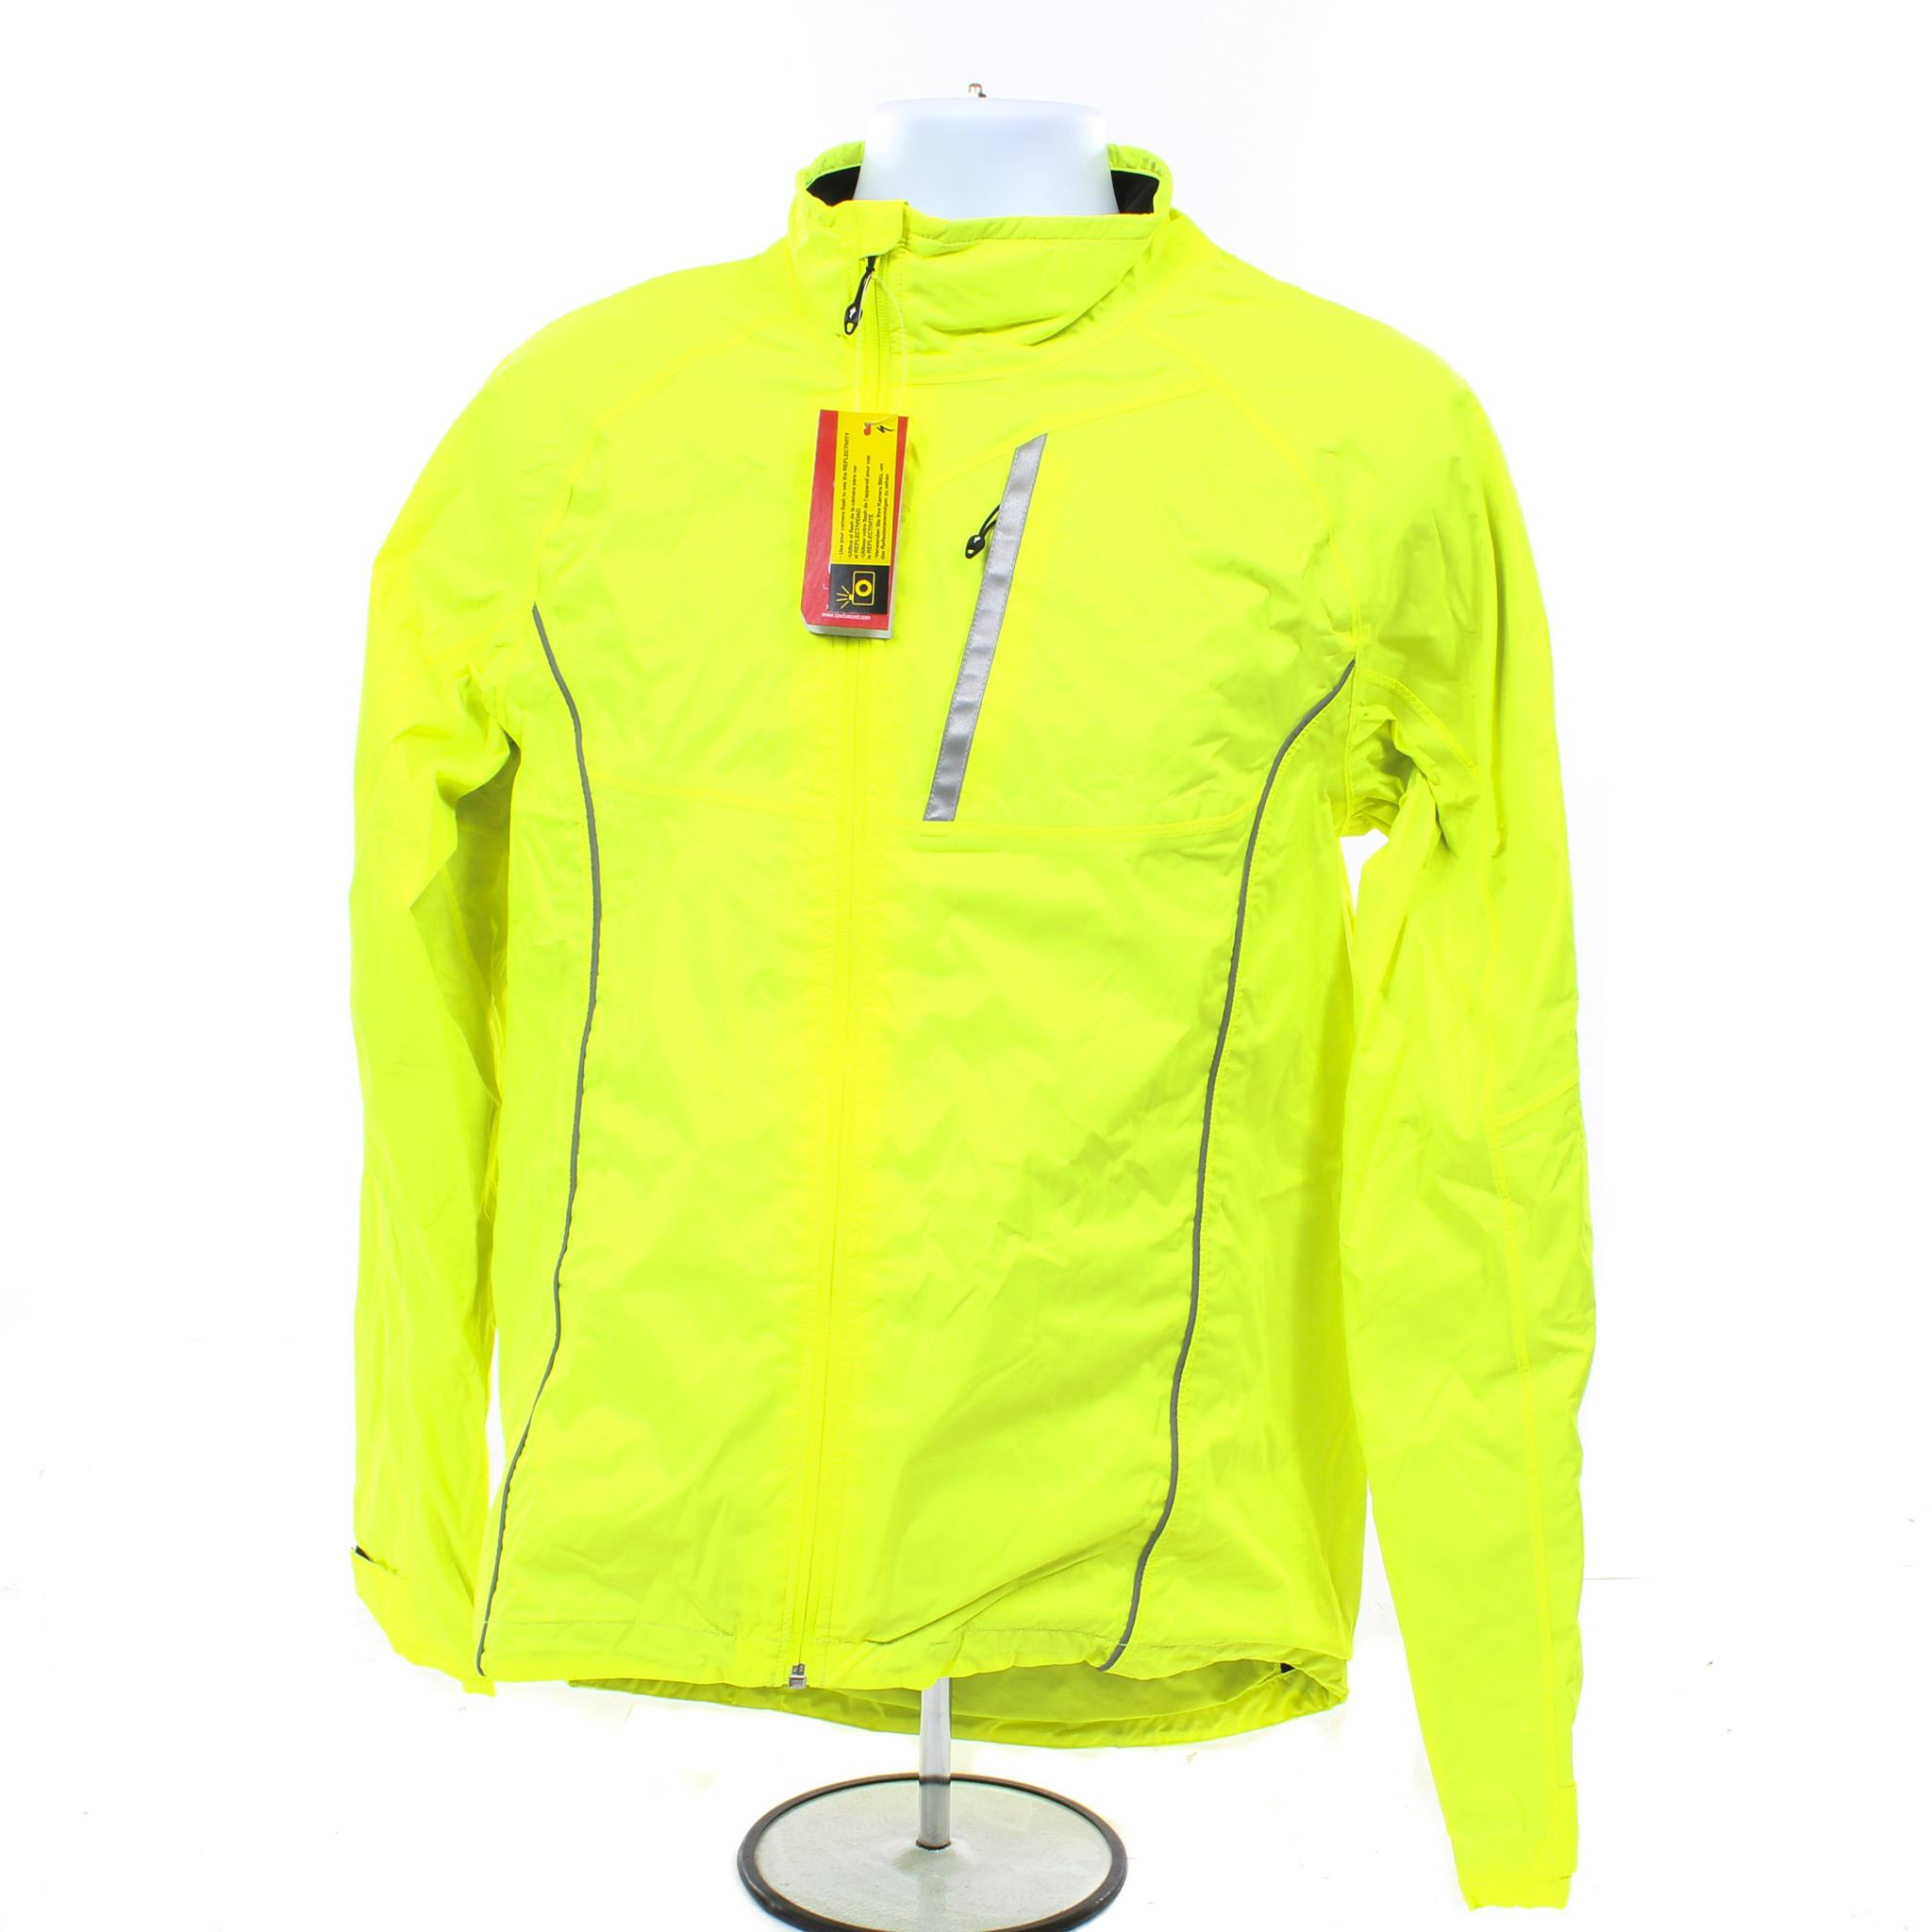 86f2ec607 Details about NEW Specialized Deflect H2O Comp Commuter Cycling Jacket  Medium Neon Yellow